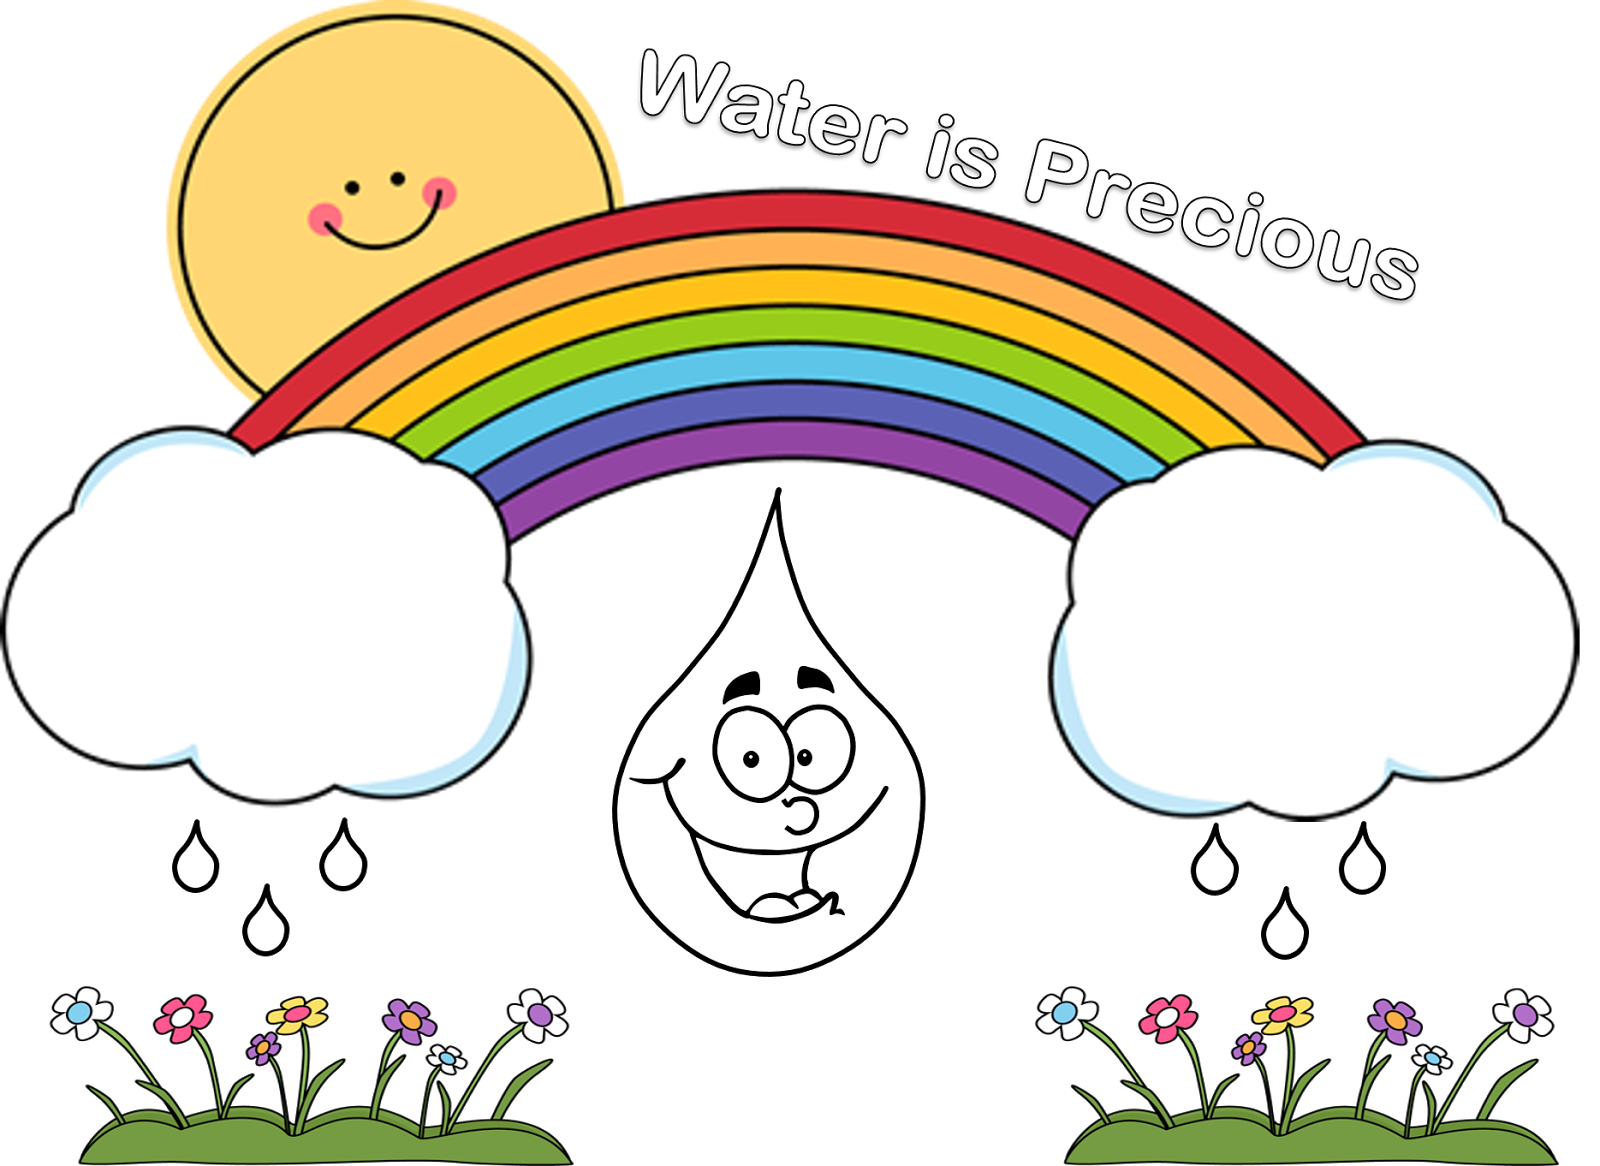 Drawing posters save girl child. Poster for water conservation